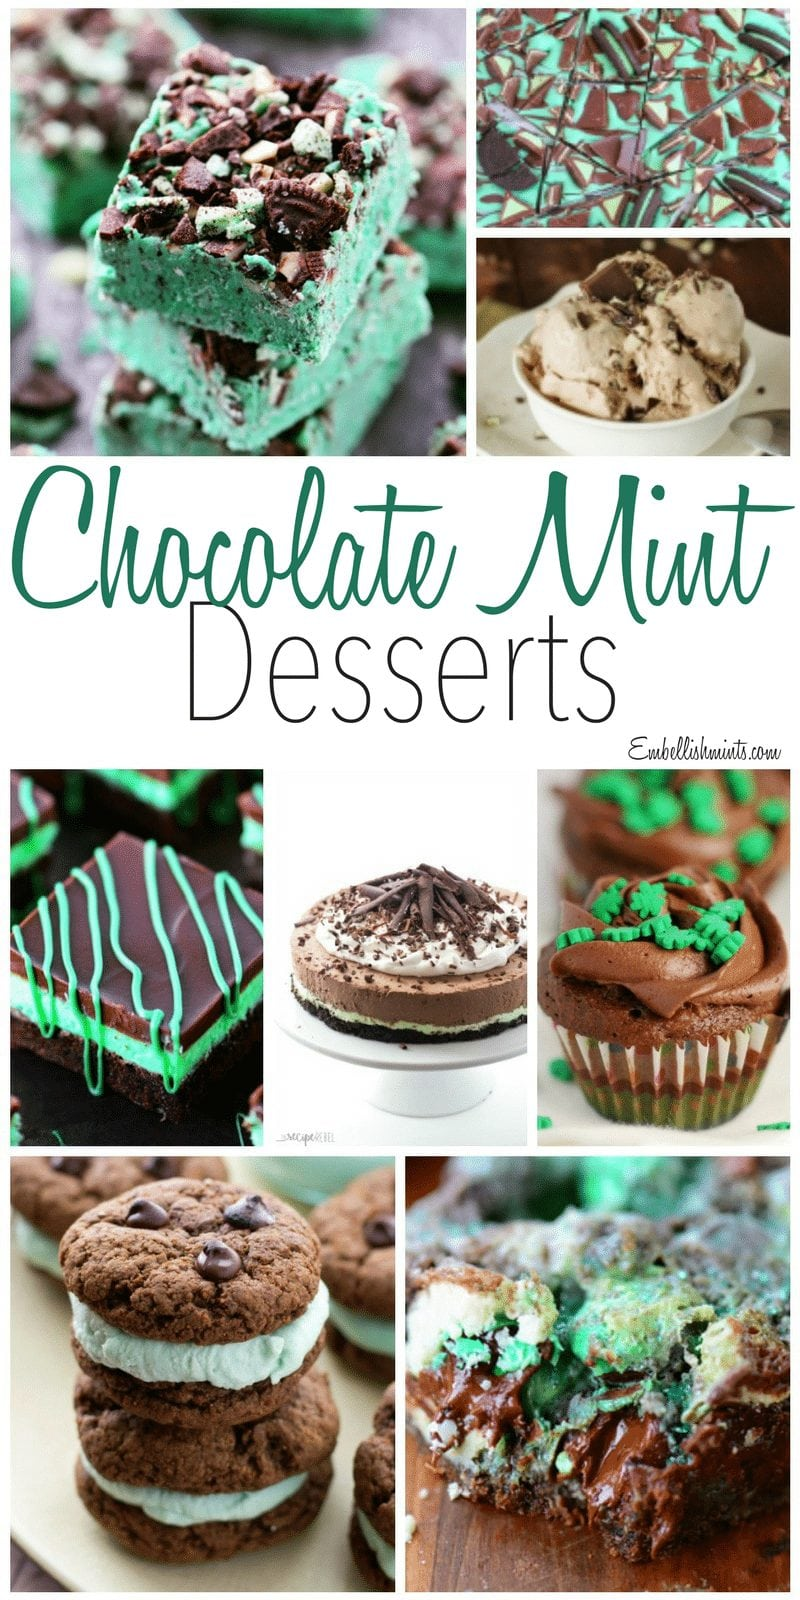 Dessert Recipes! Chocolate Mint Desserts including brownies, cheesecake, ice cream and more! All on Embellishmints.com